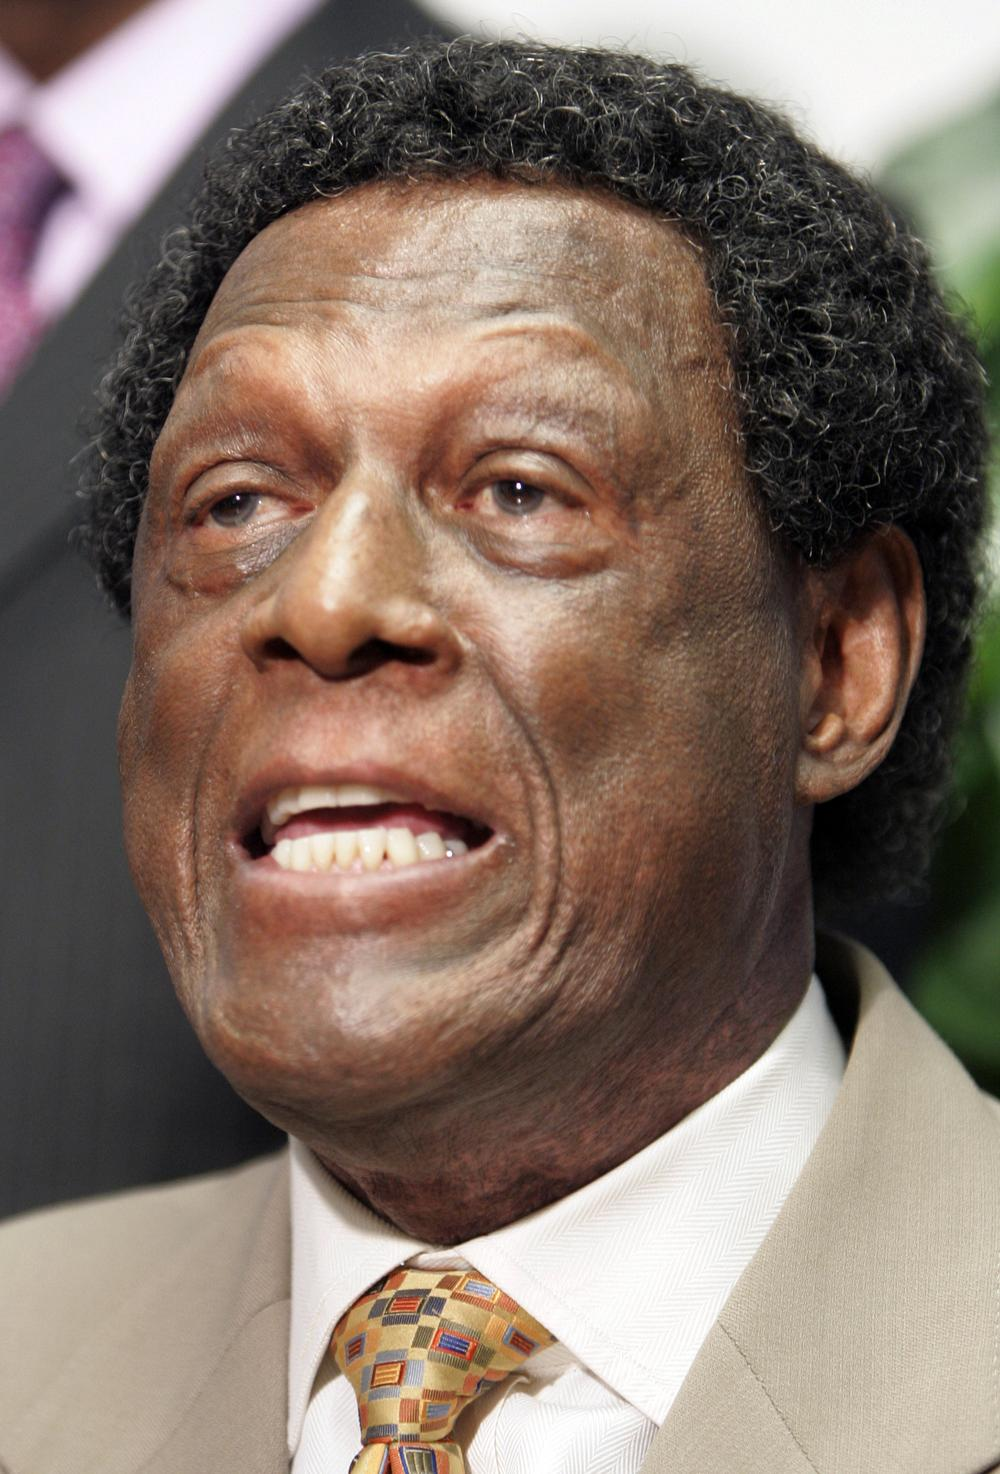 """NBA Hall of Famer and former Los Angeles Clippers executive Elgin Baylor is suing the team saying he was wrongfully terminated in 2008 """"on account of his age and his race"""" and that he was grossly underpaid. (AP)"""